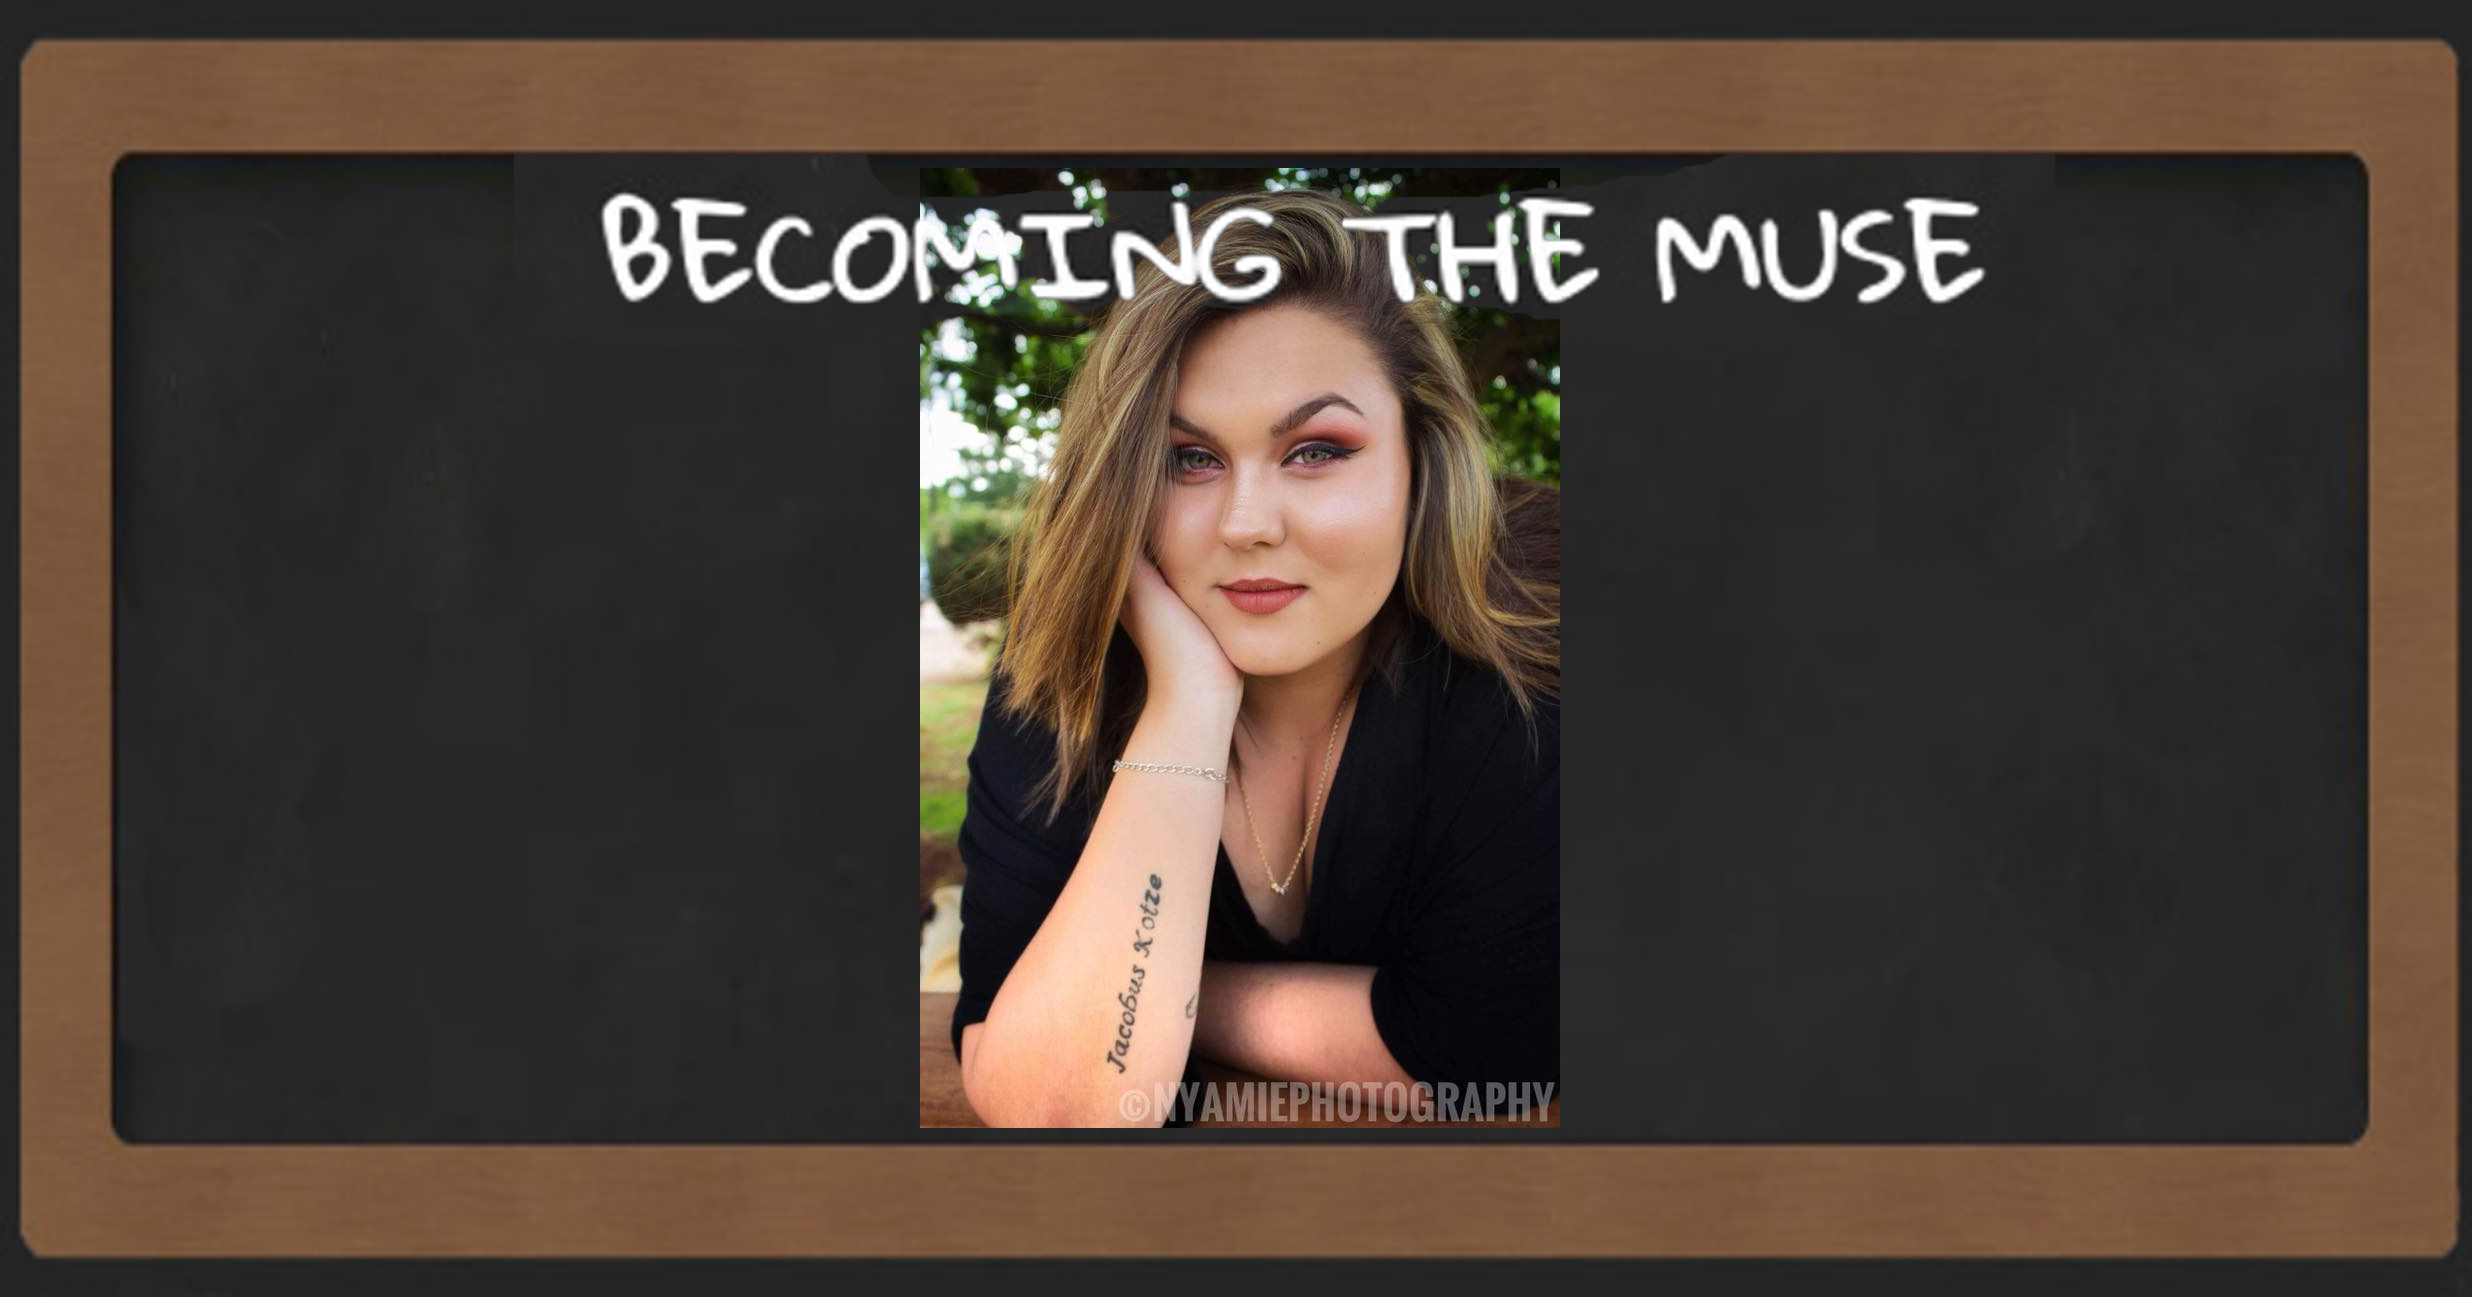 Becoming the muse coffee with Hayley